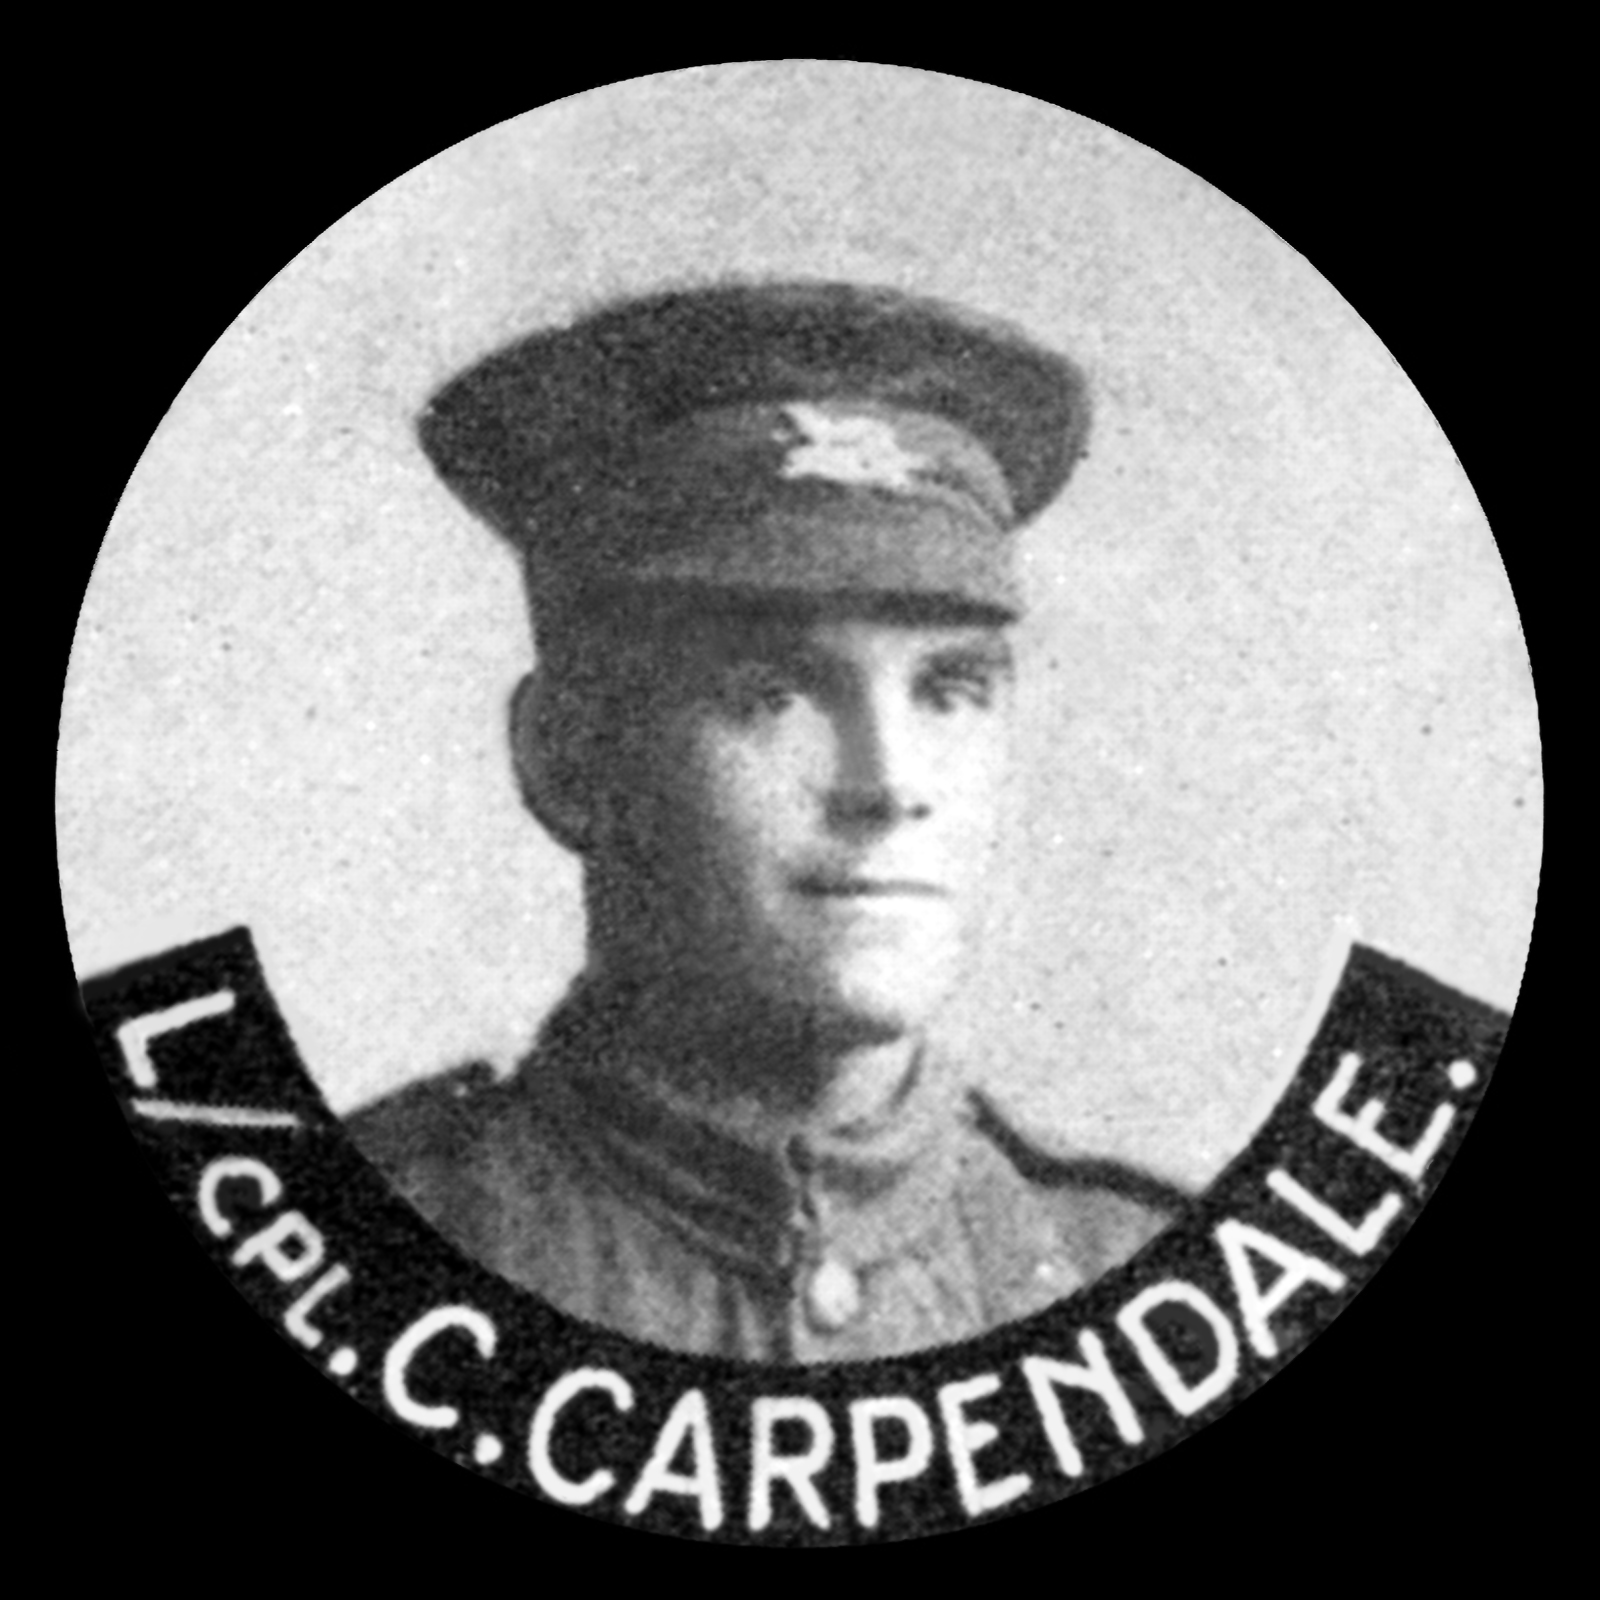 CARPENDALE Cecil Montague